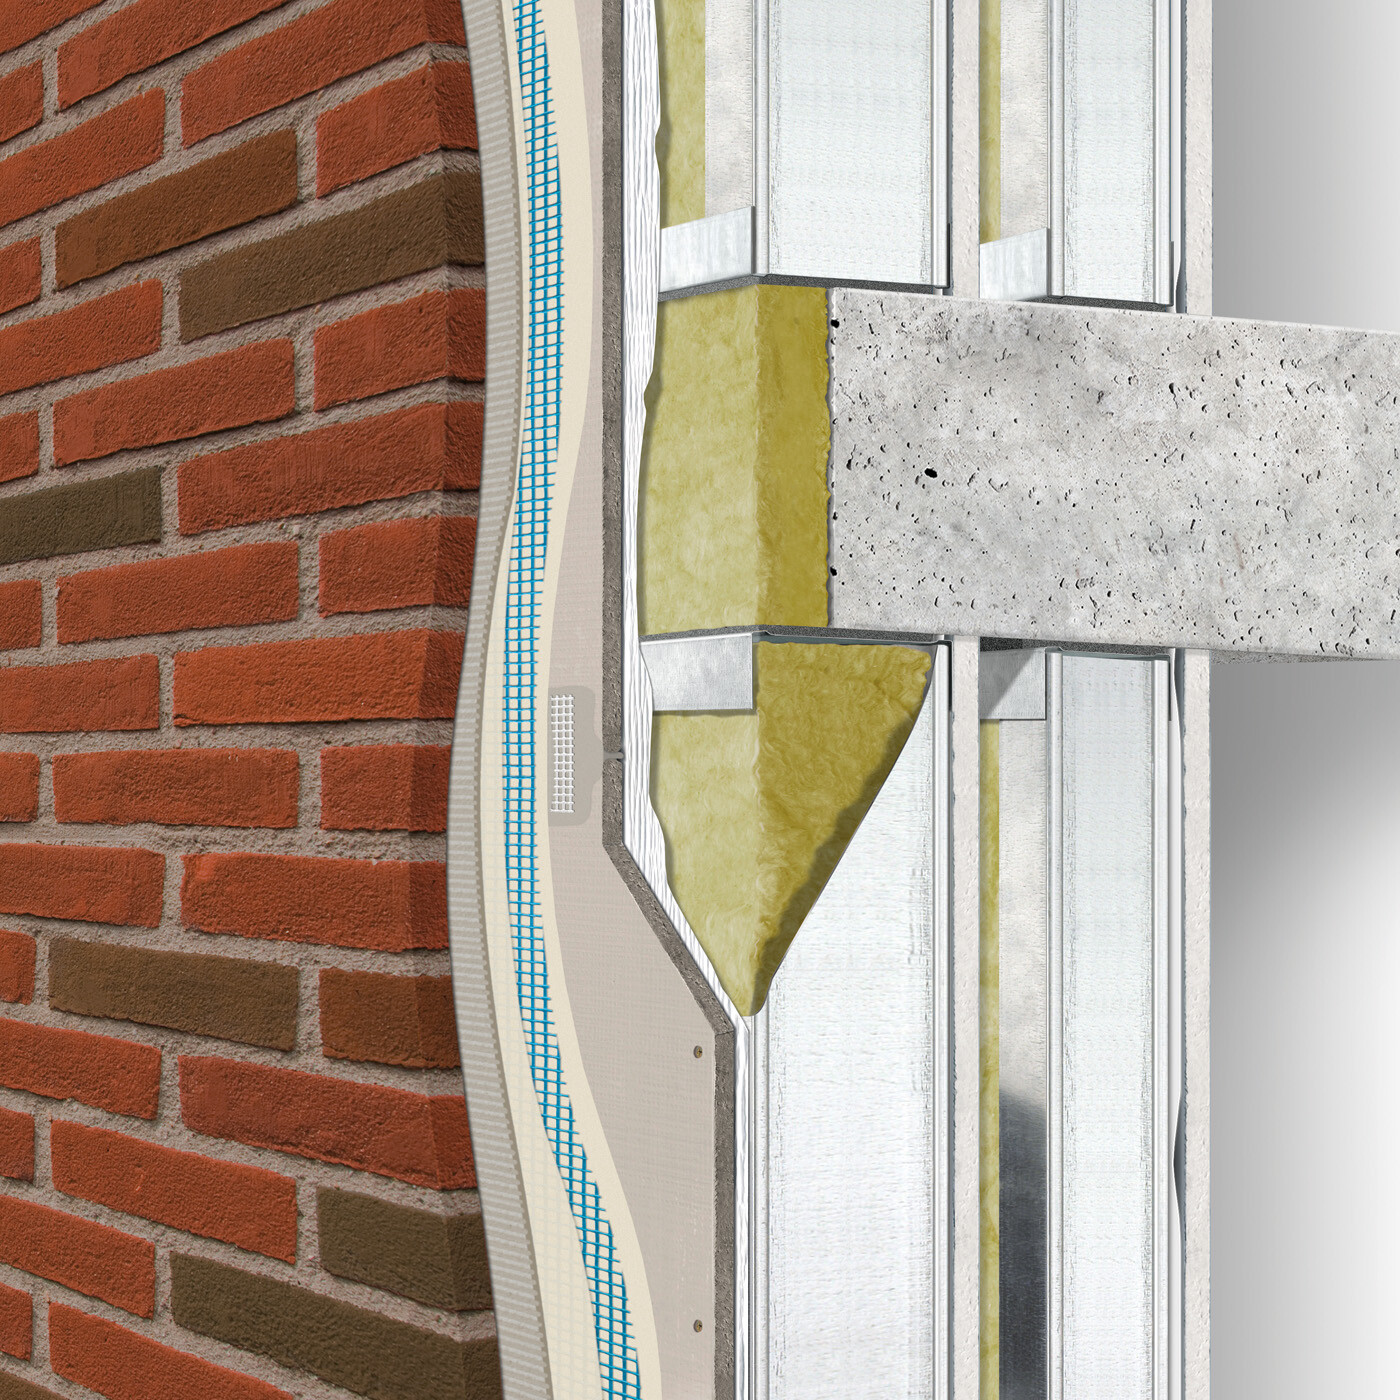 Exterior wall construction directly-applied / water-managed between floors: double stud with intermediate board